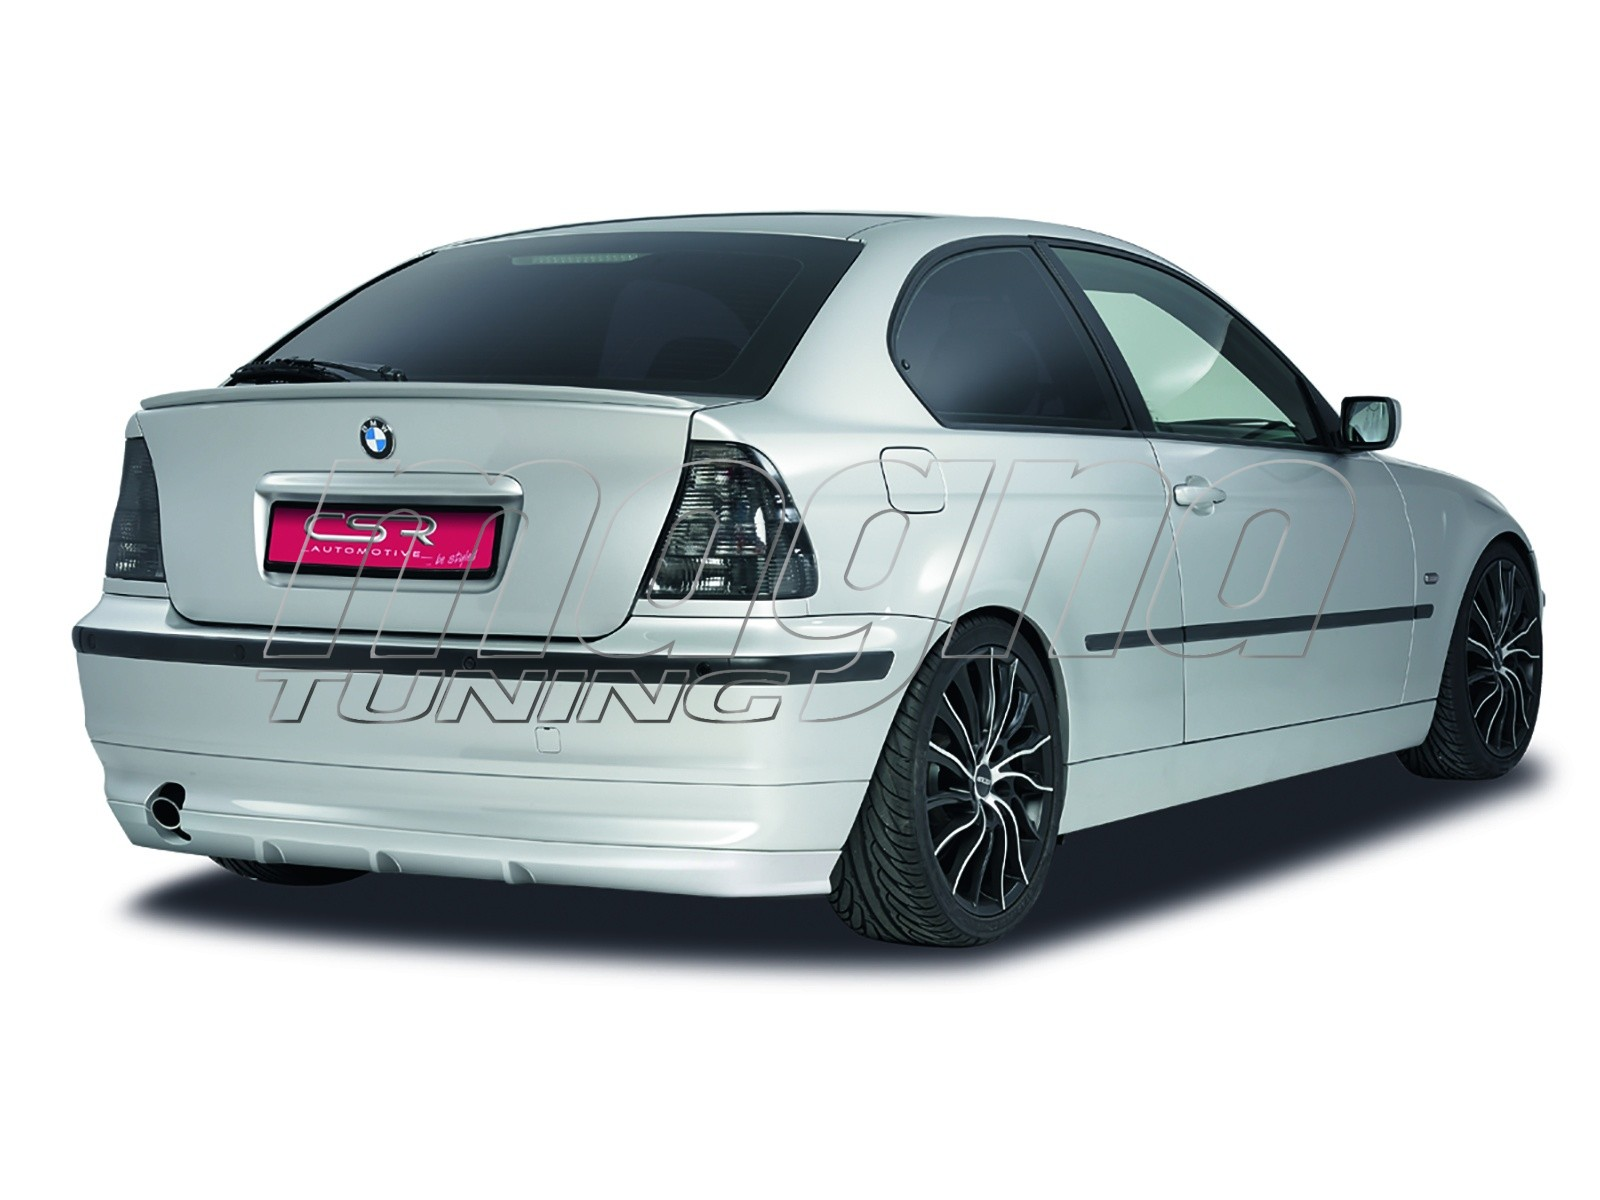 bmw e46 compact crono rear bumper extension. Black Bedroom Furniture Sets. Home Design Ideas